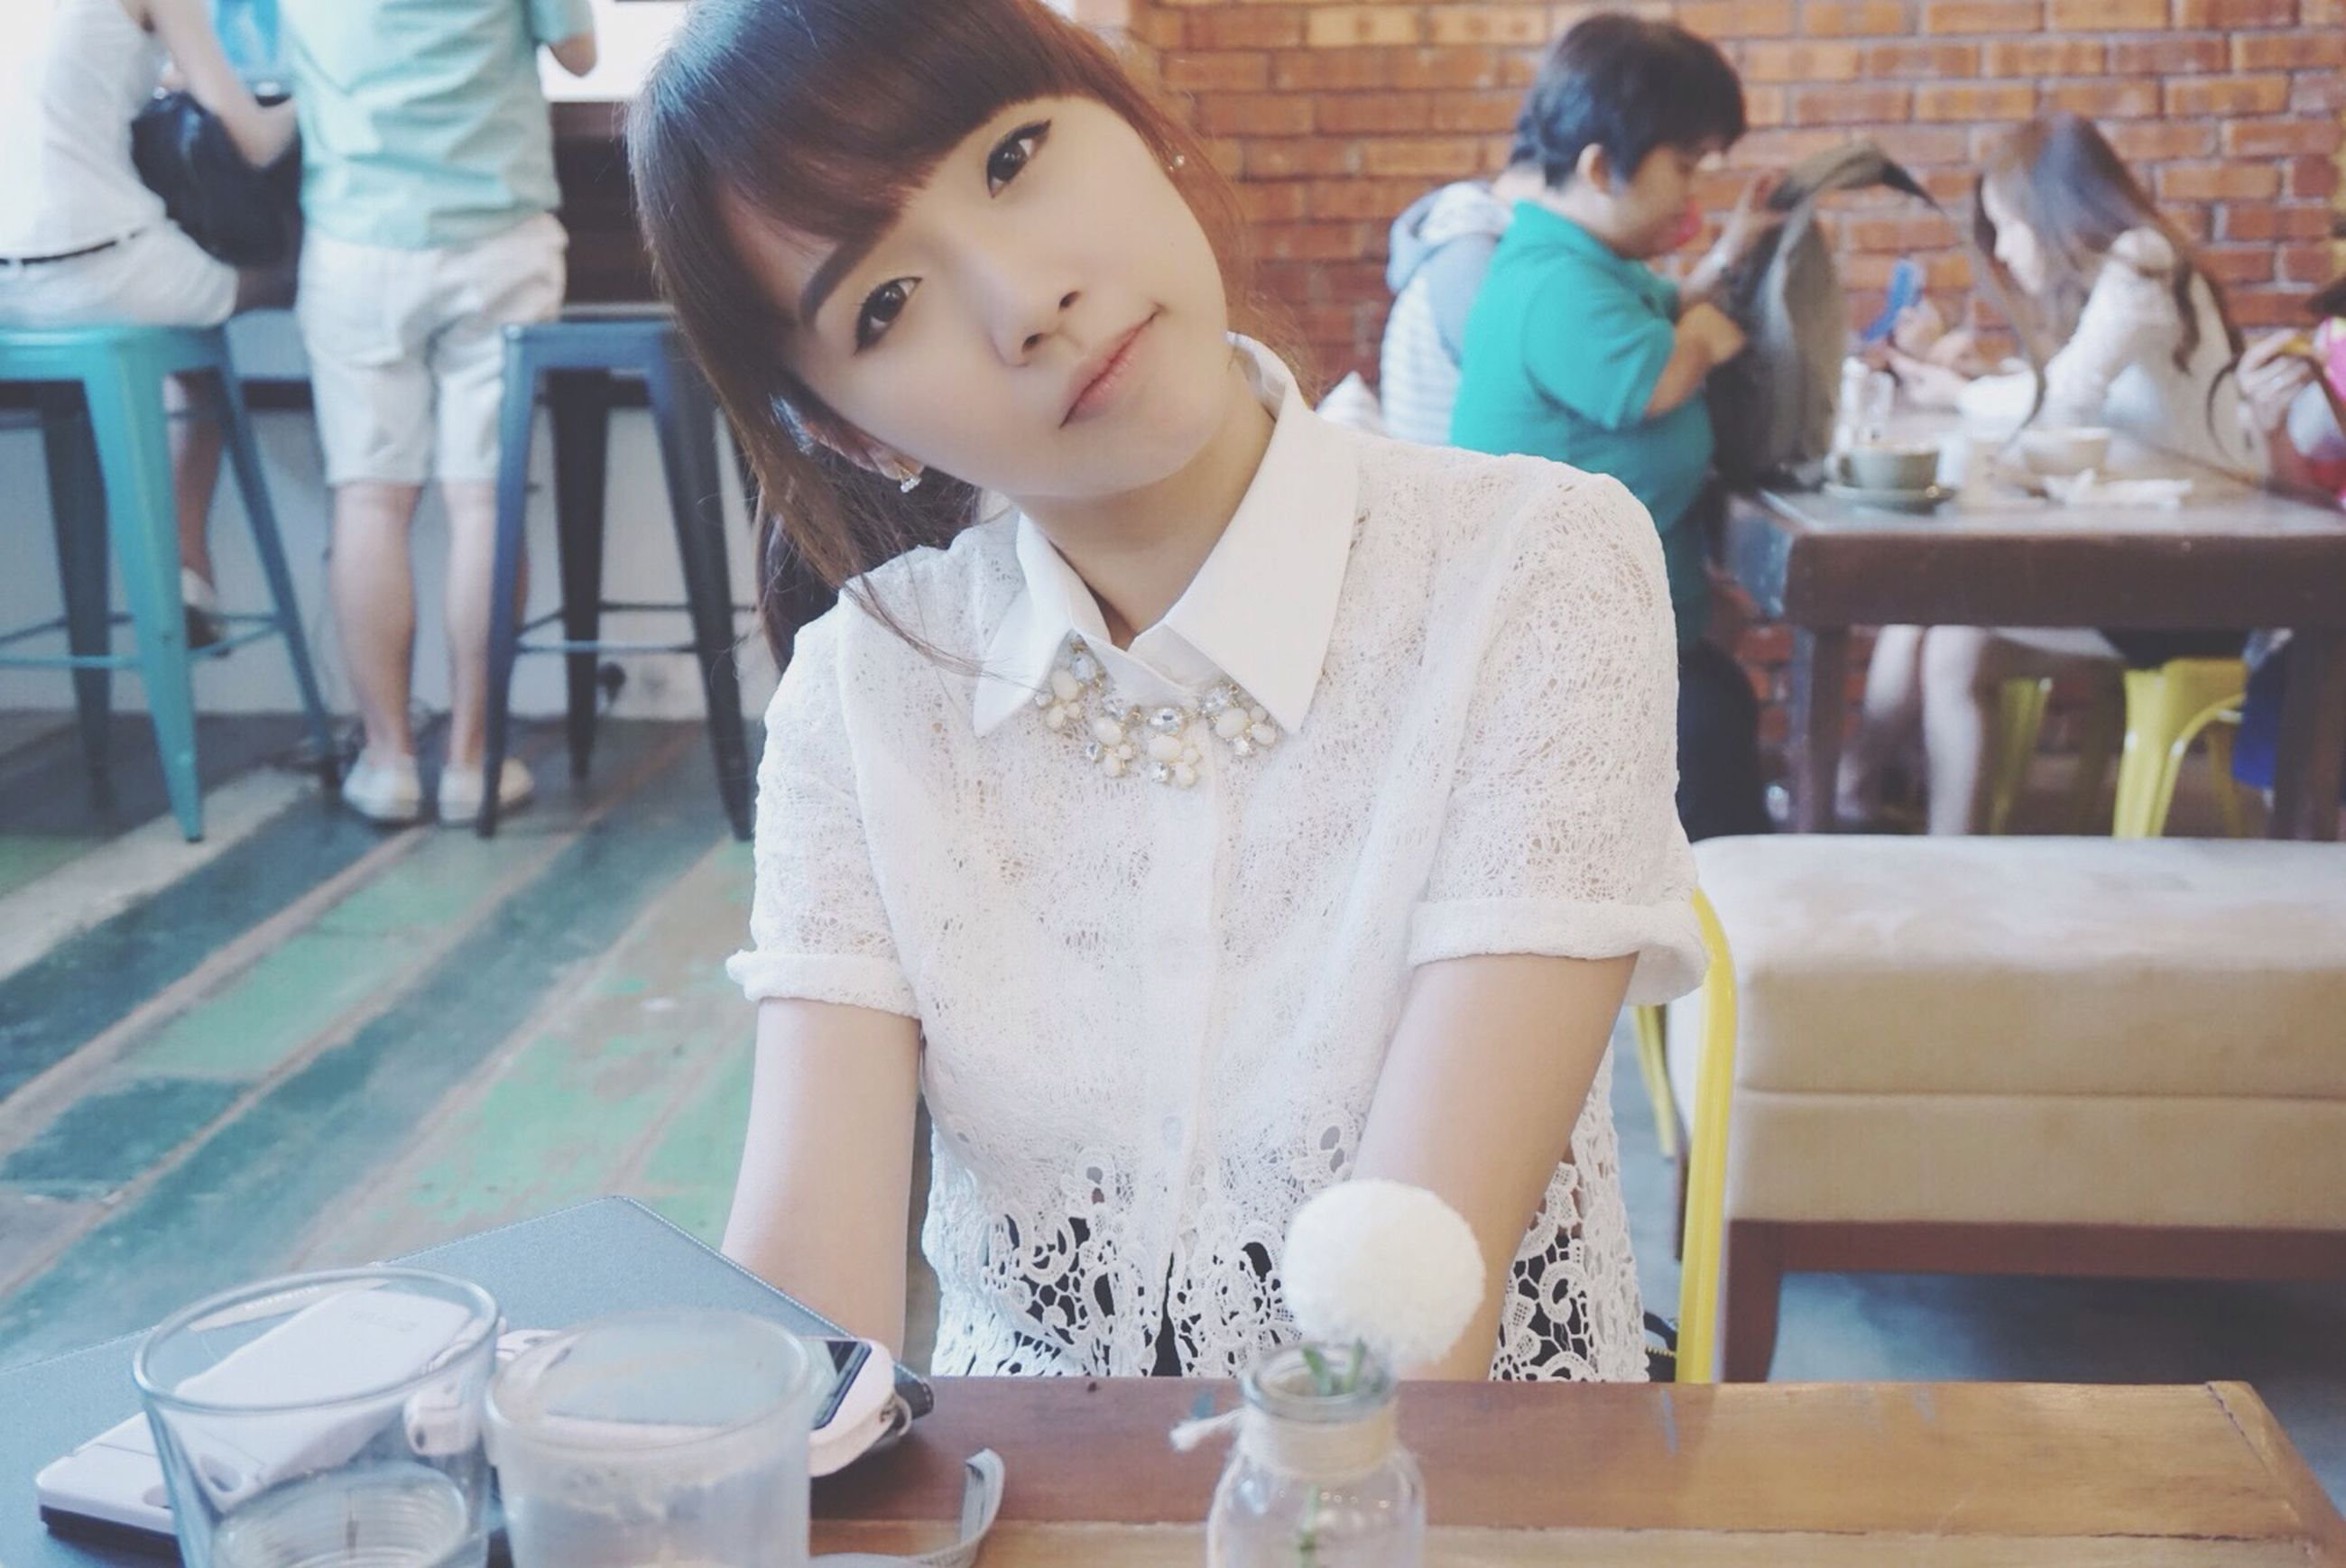 casual clothing, lifestyles, indoors, leisure activity, person, sitting, childhood, standing, boys, table, front view, holding, chair, incidental people, food and drink, elementary age, full length, three quarter length